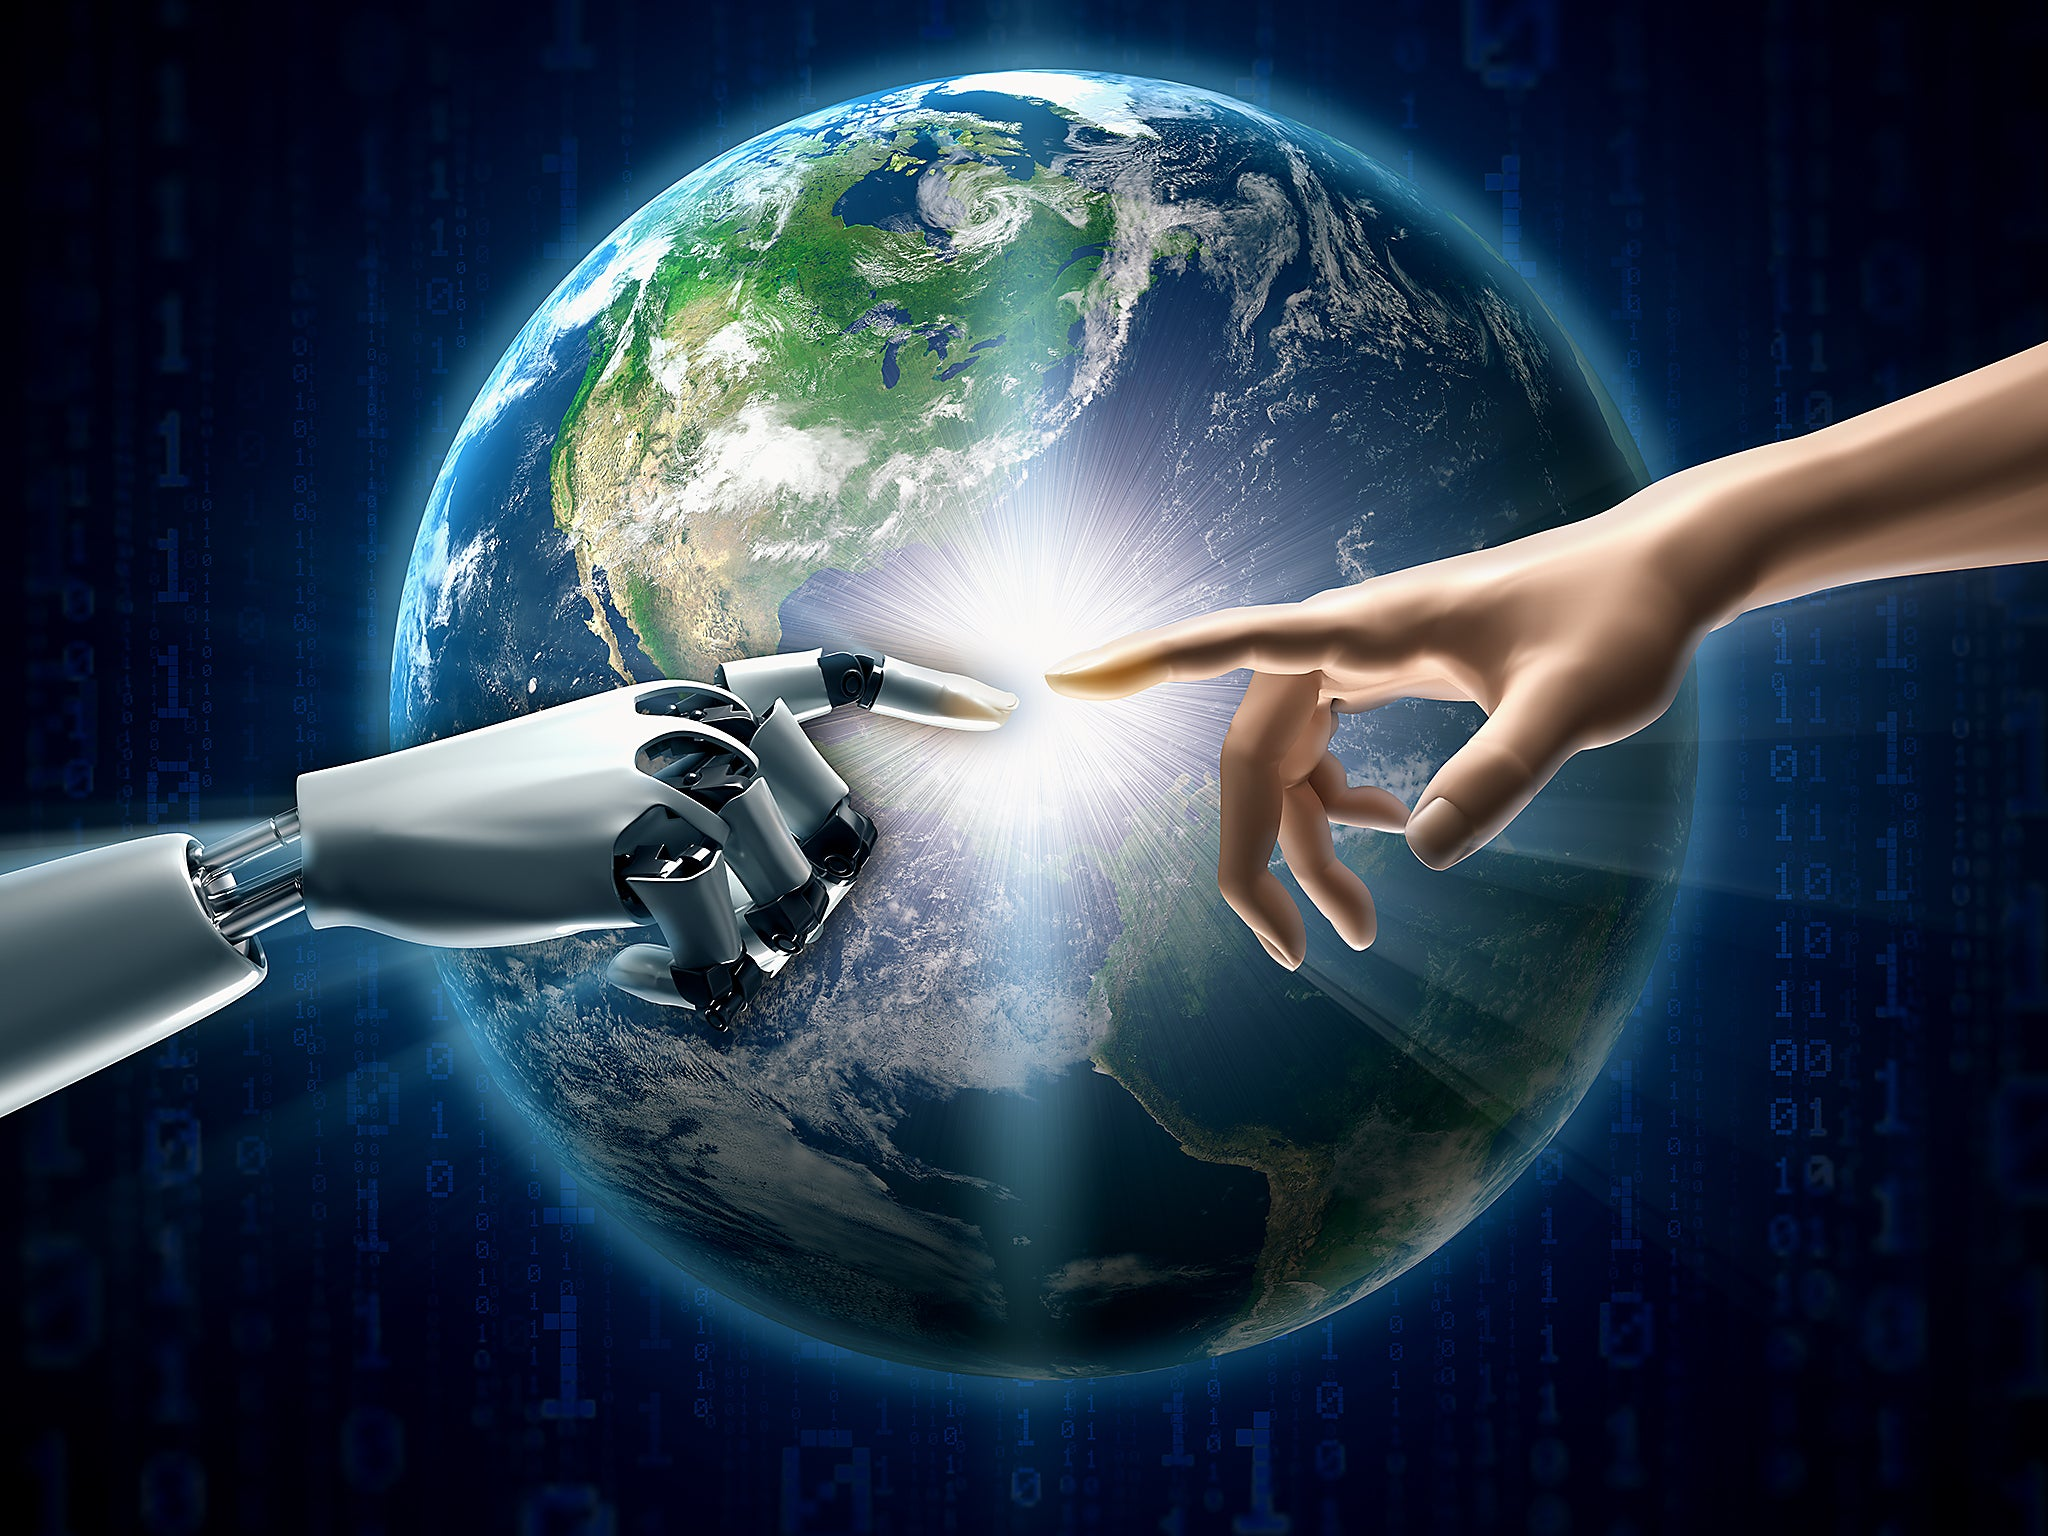 image processing and artificial intelligence Artificial intelligence (ai) market by technology (machine learning, natural language processing (nlp), image processing, and speech recognition), application & geography - global forecast to 2020 - market research report and industry analysis.